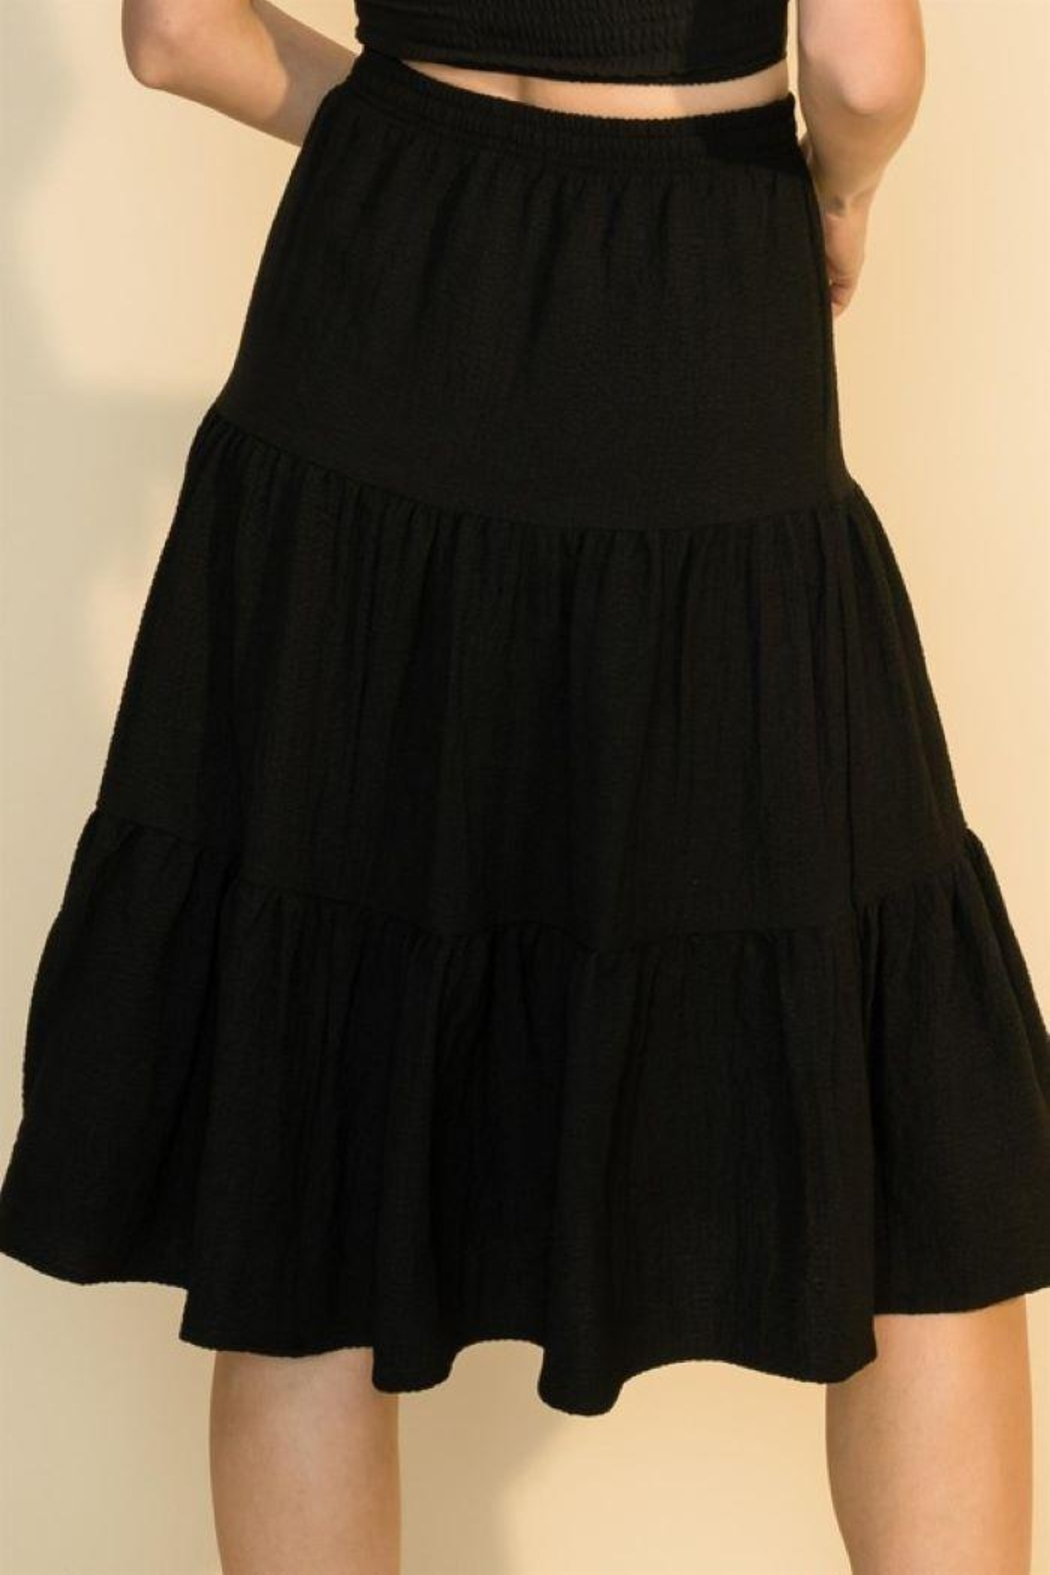 HYFVE Shirring With Ruffle Skirt - Side Cropped Image